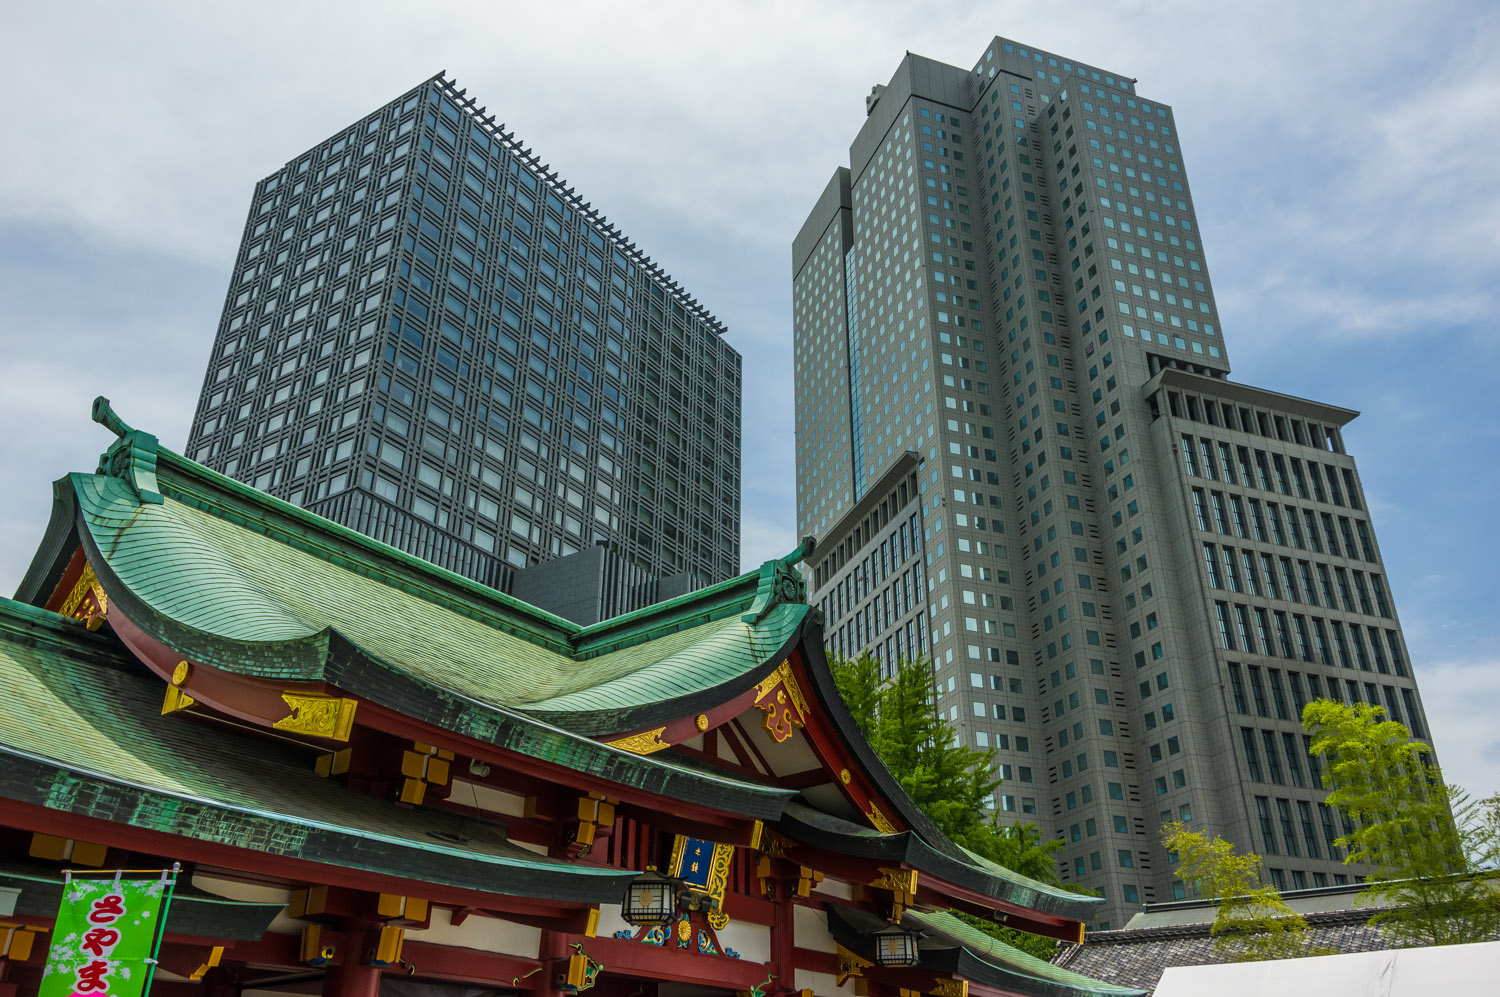 Skyscrapers tower over Hie shrine - I never tire of Tokyo views like this